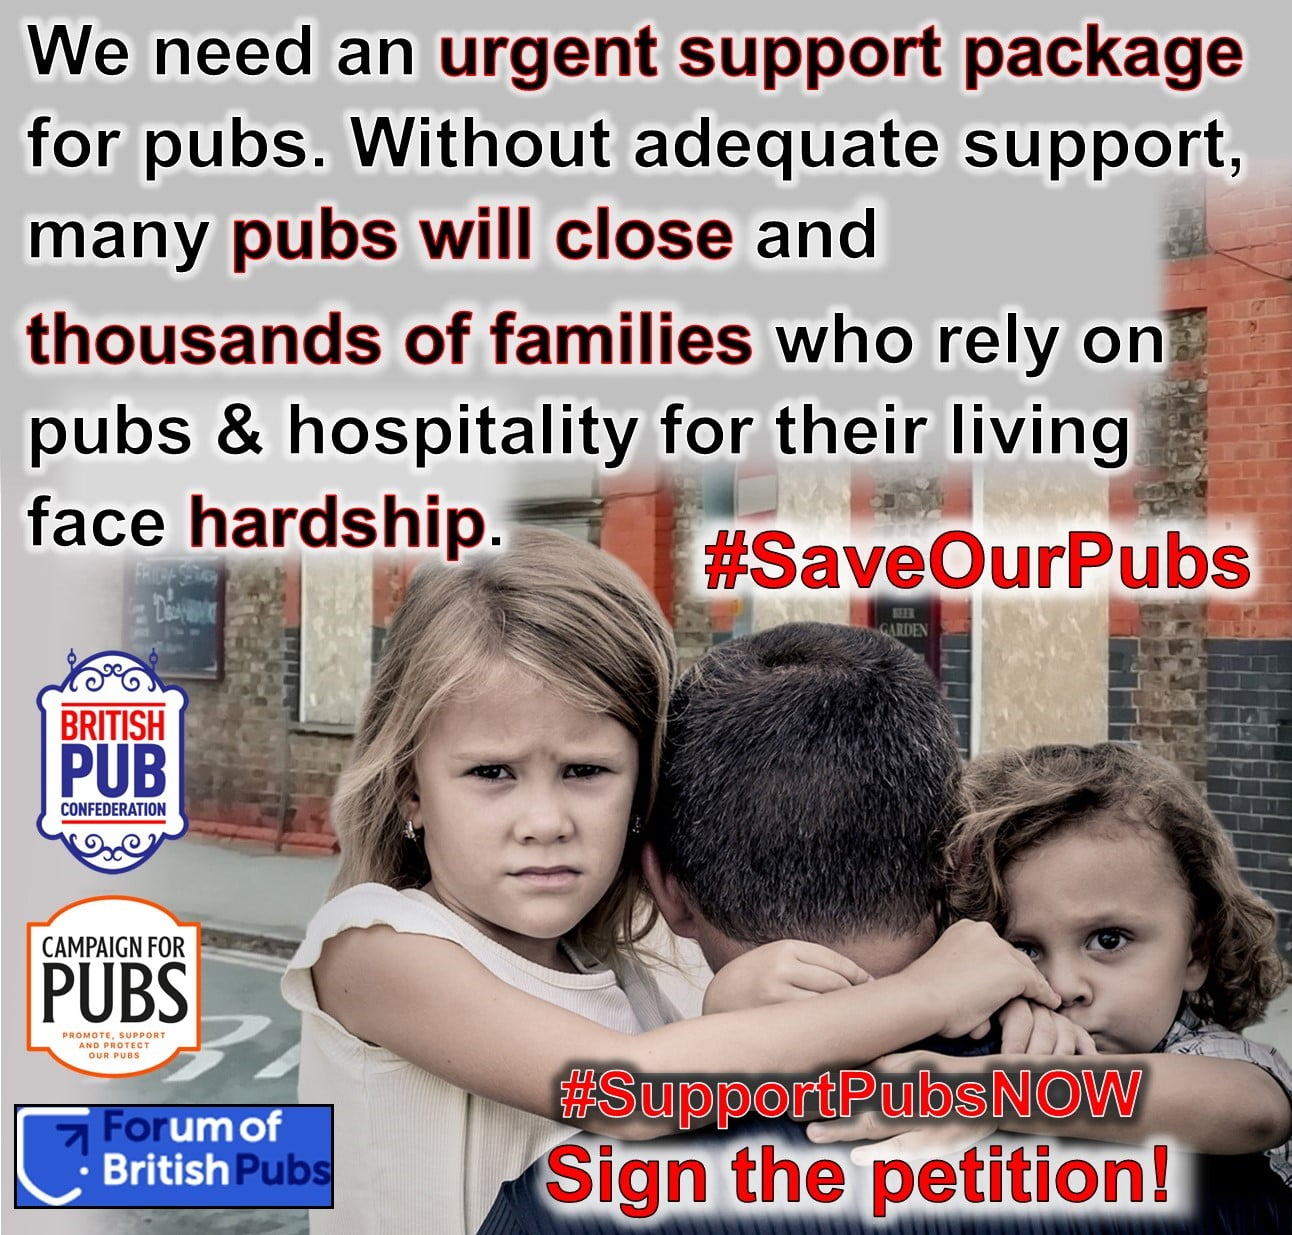 Support Our Pubs NOW! Coalition of pro-pub organisations launches petition for an urgent package of support to save pubs